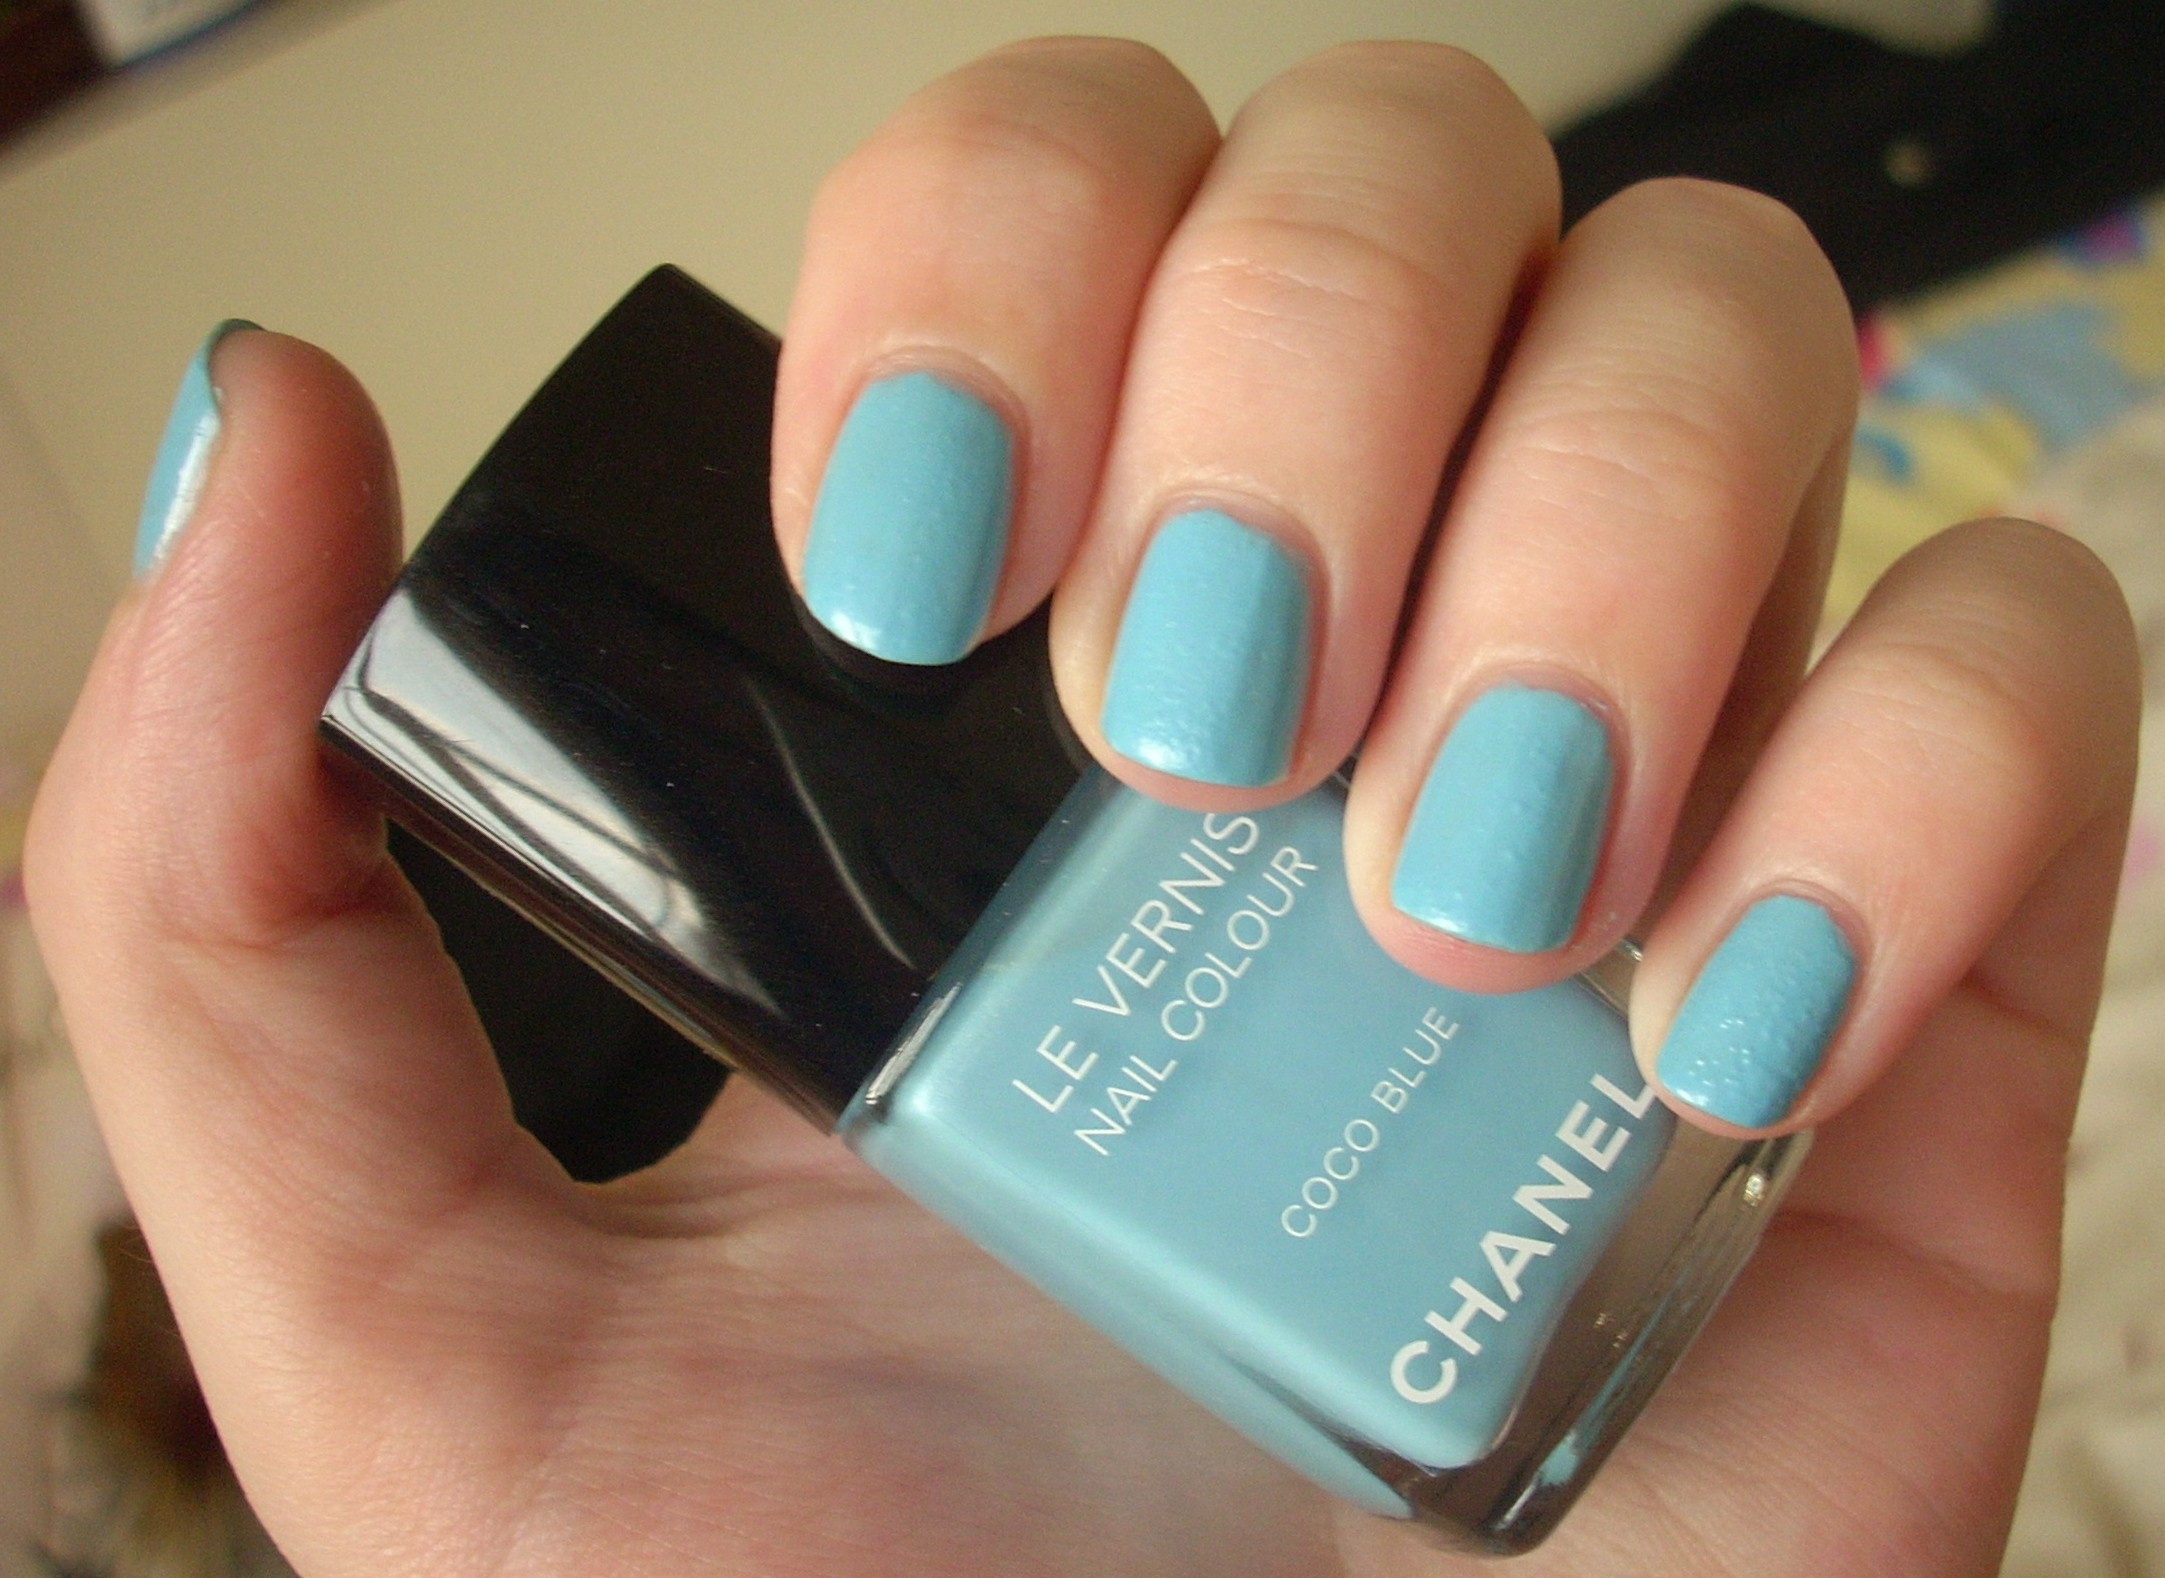 Funky color nail polish | Imamother